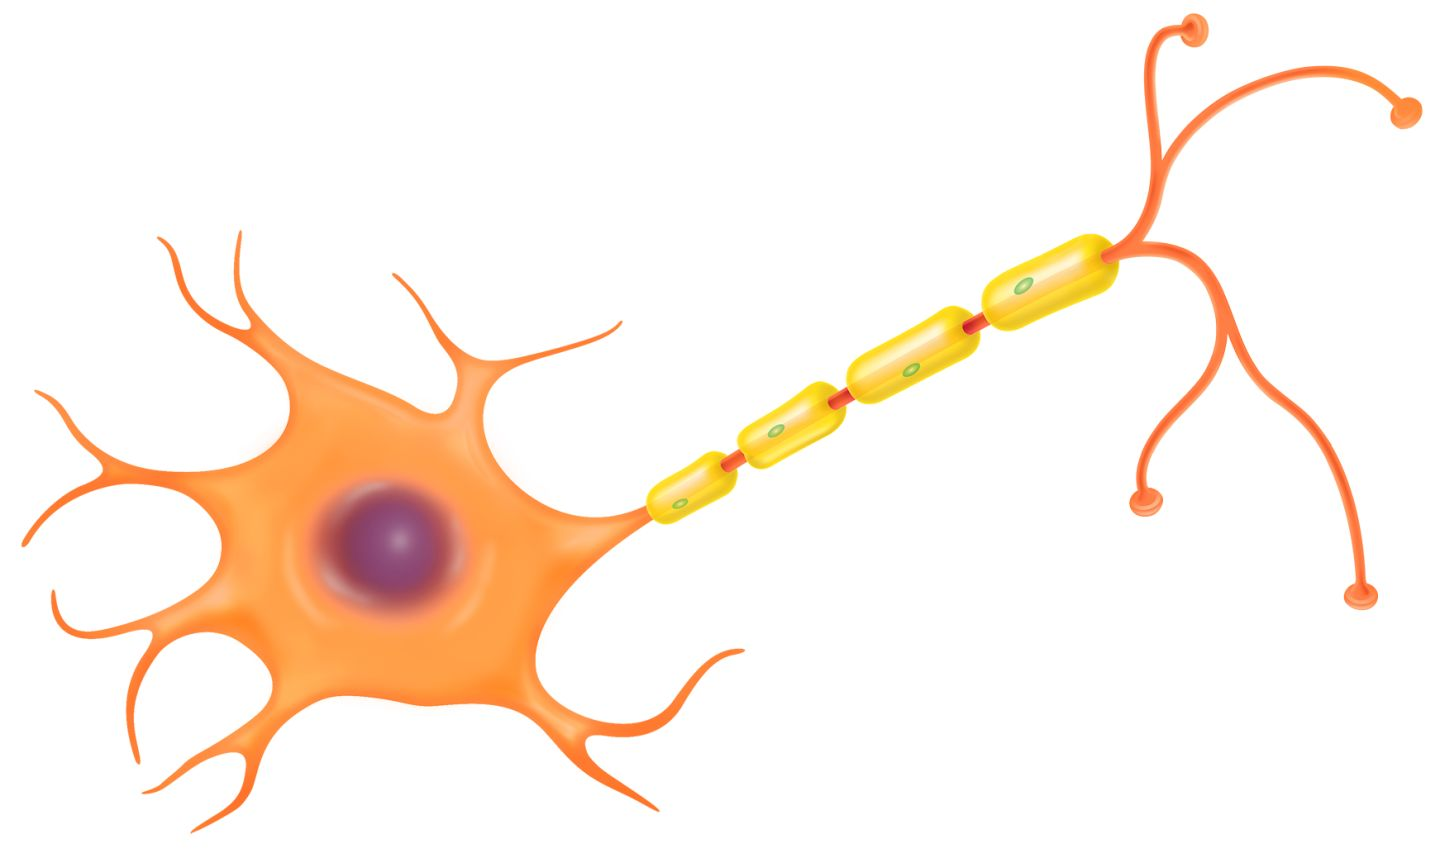 human cell clipart - photo #45